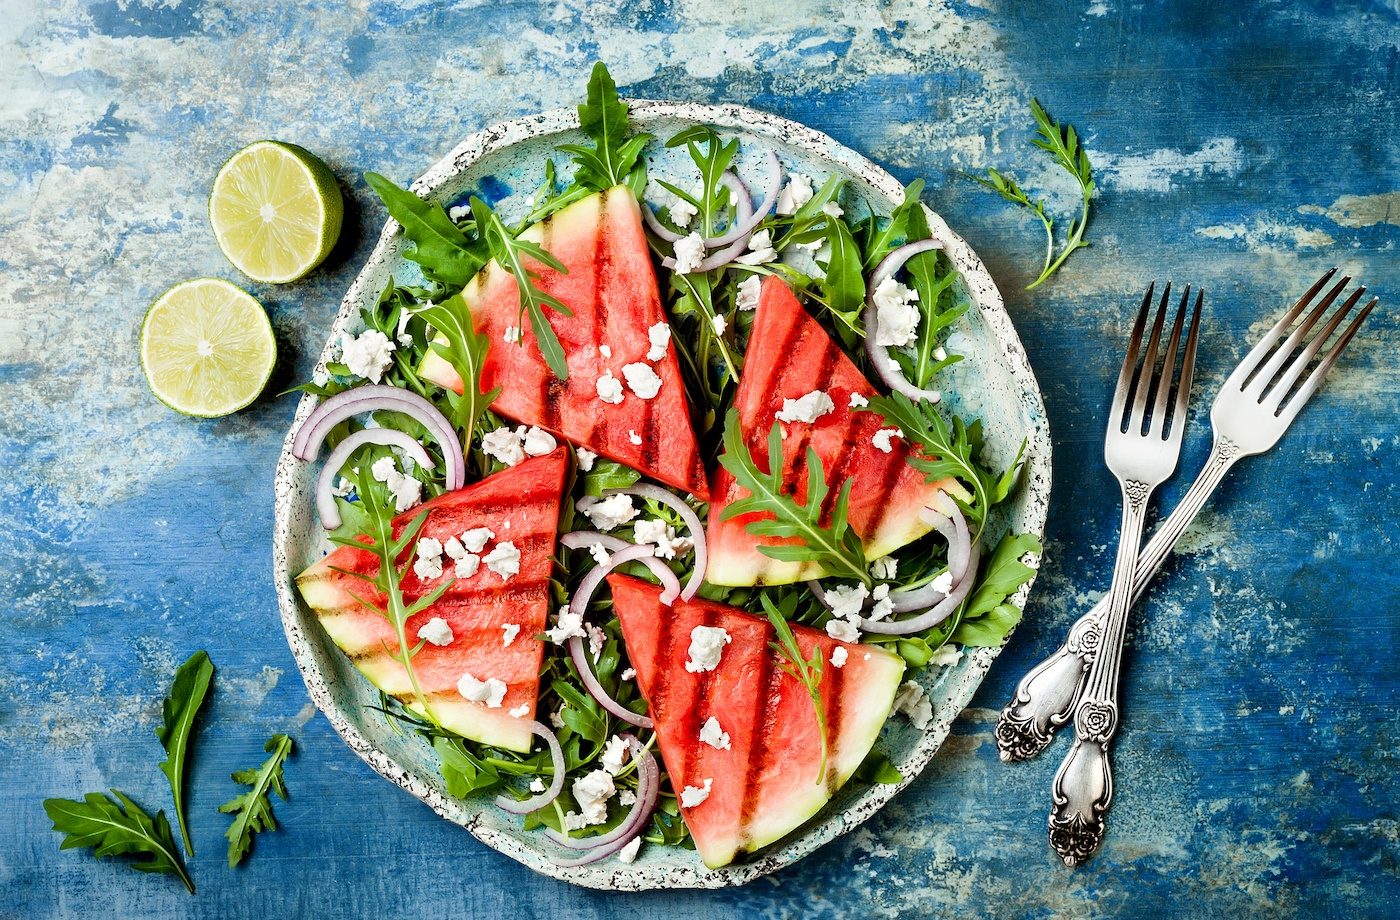 Thumbnail for 7 healthy reasons why we should all be eating more watermelon